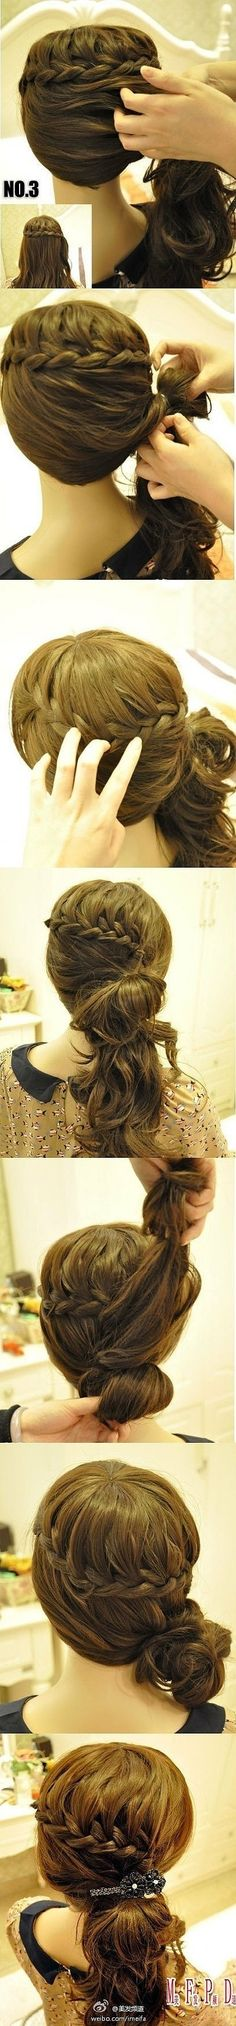 If I could braid I'd do this